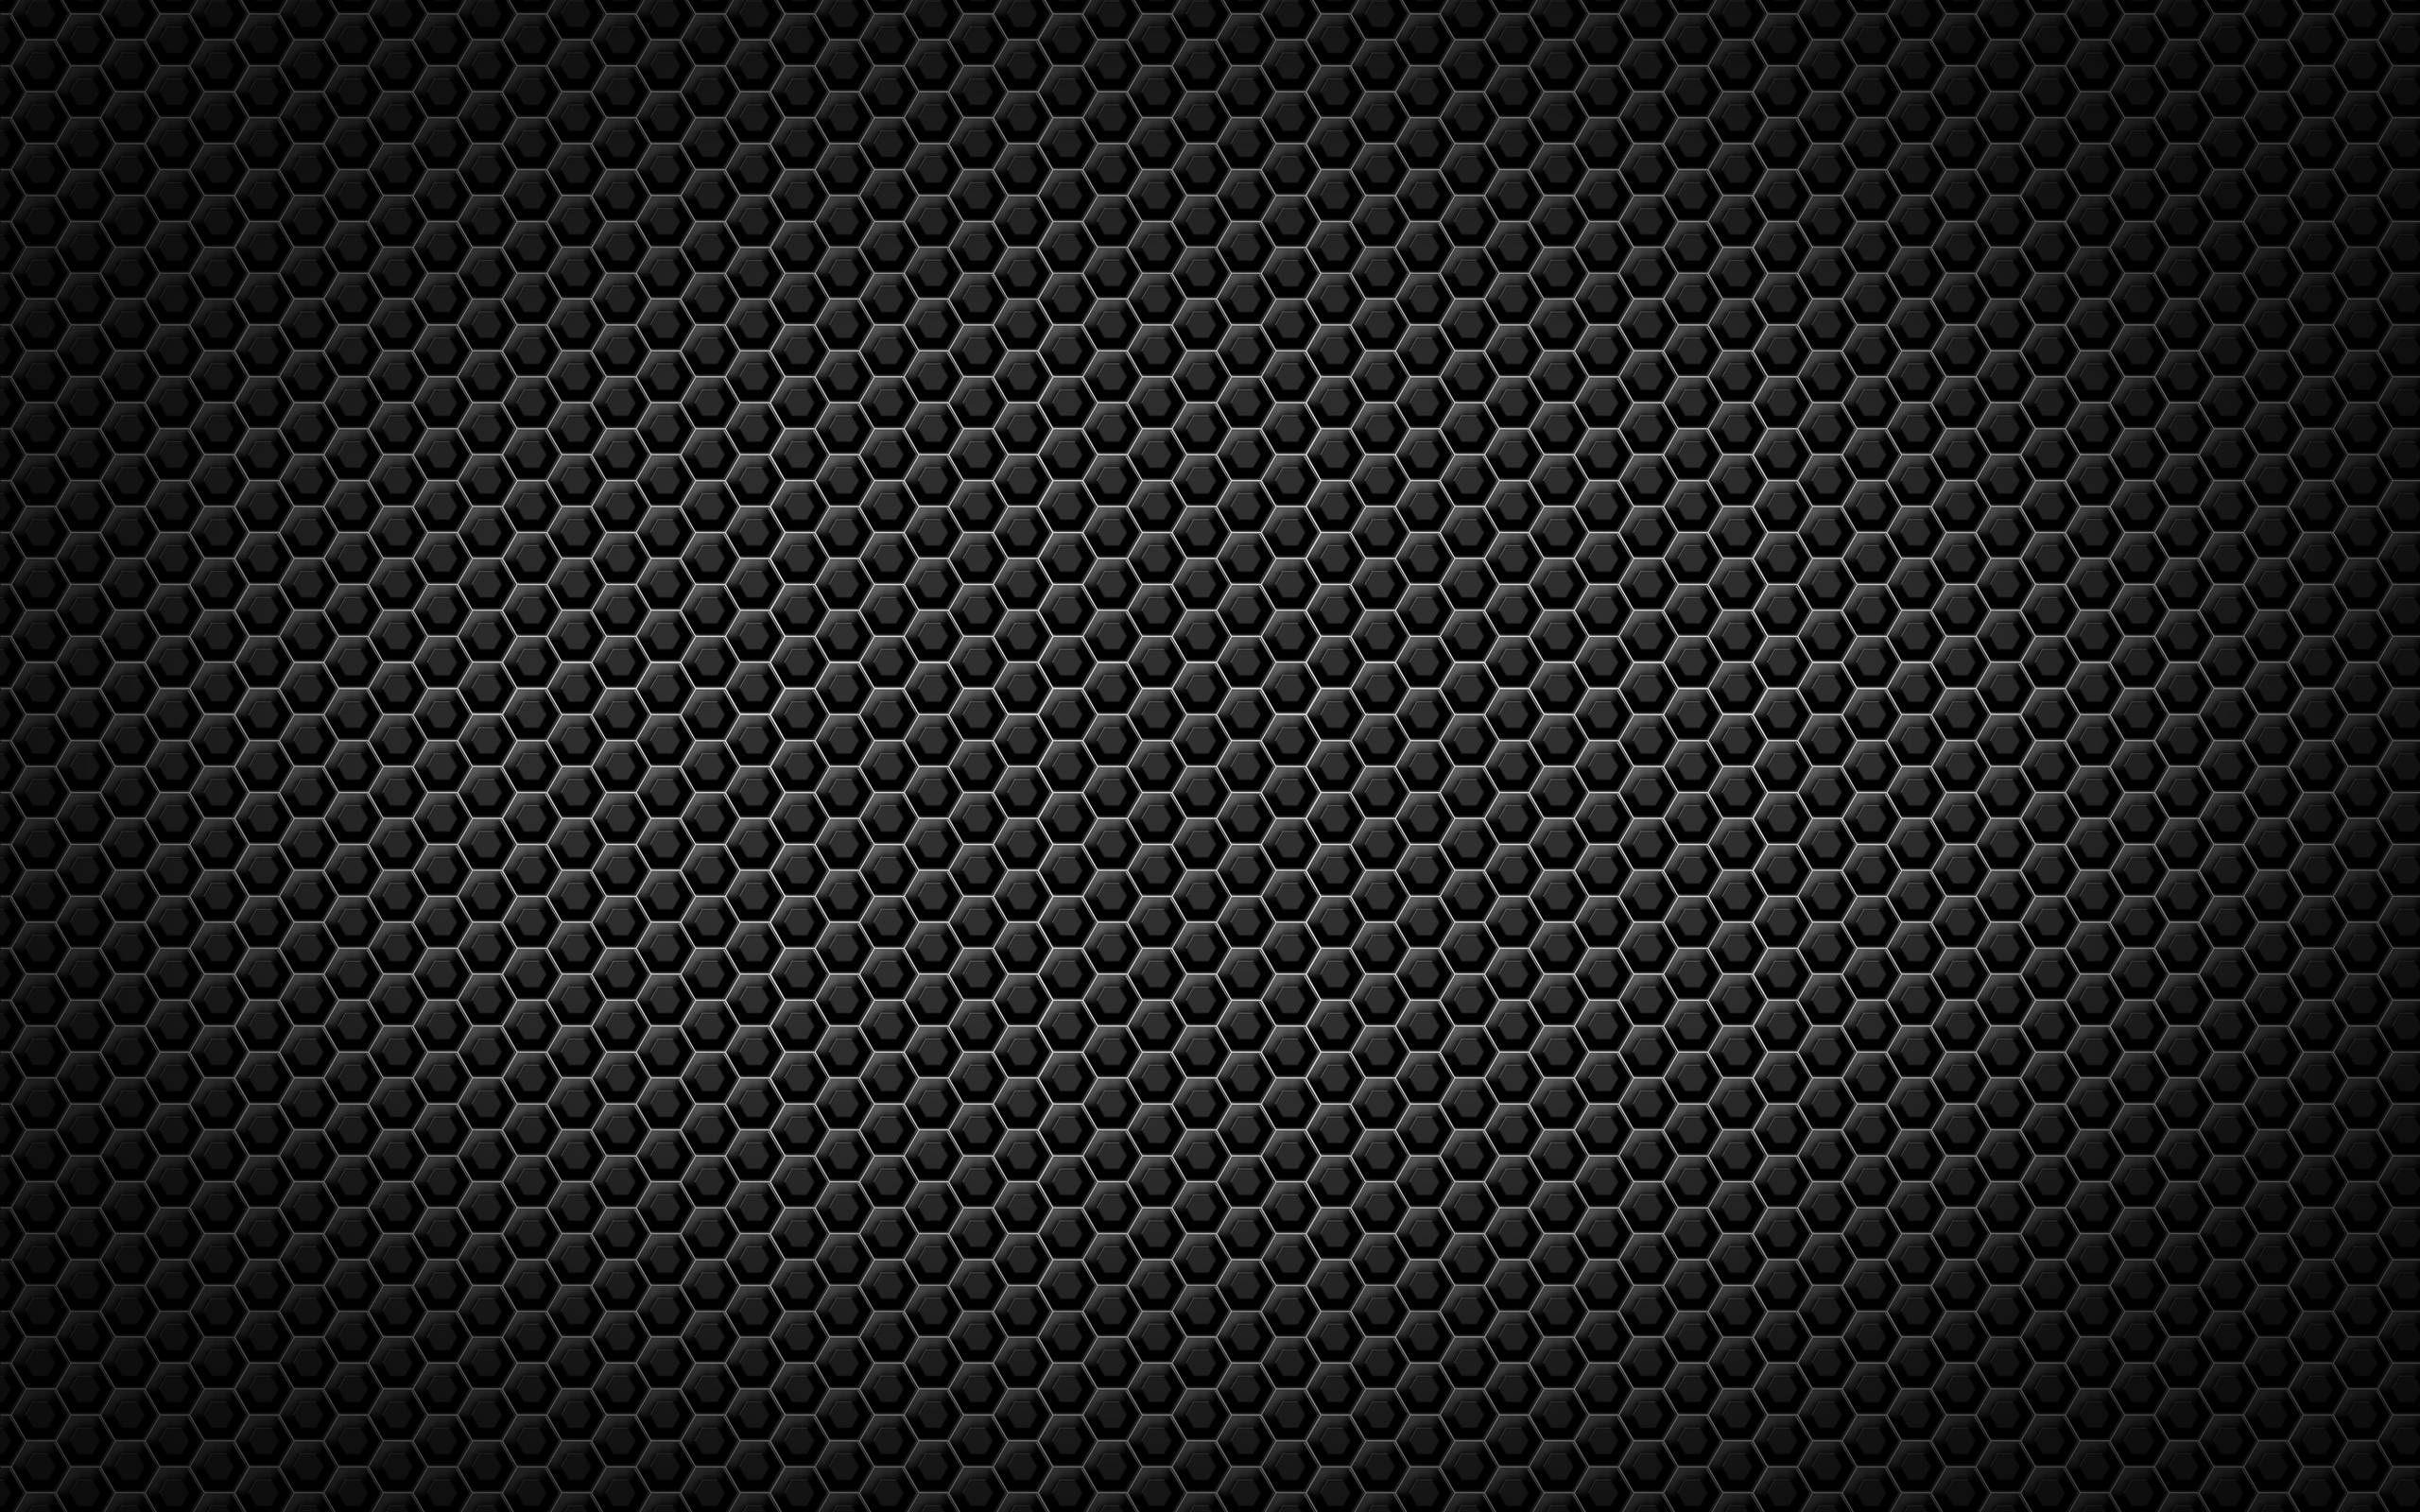 px black image for mac by judge smith